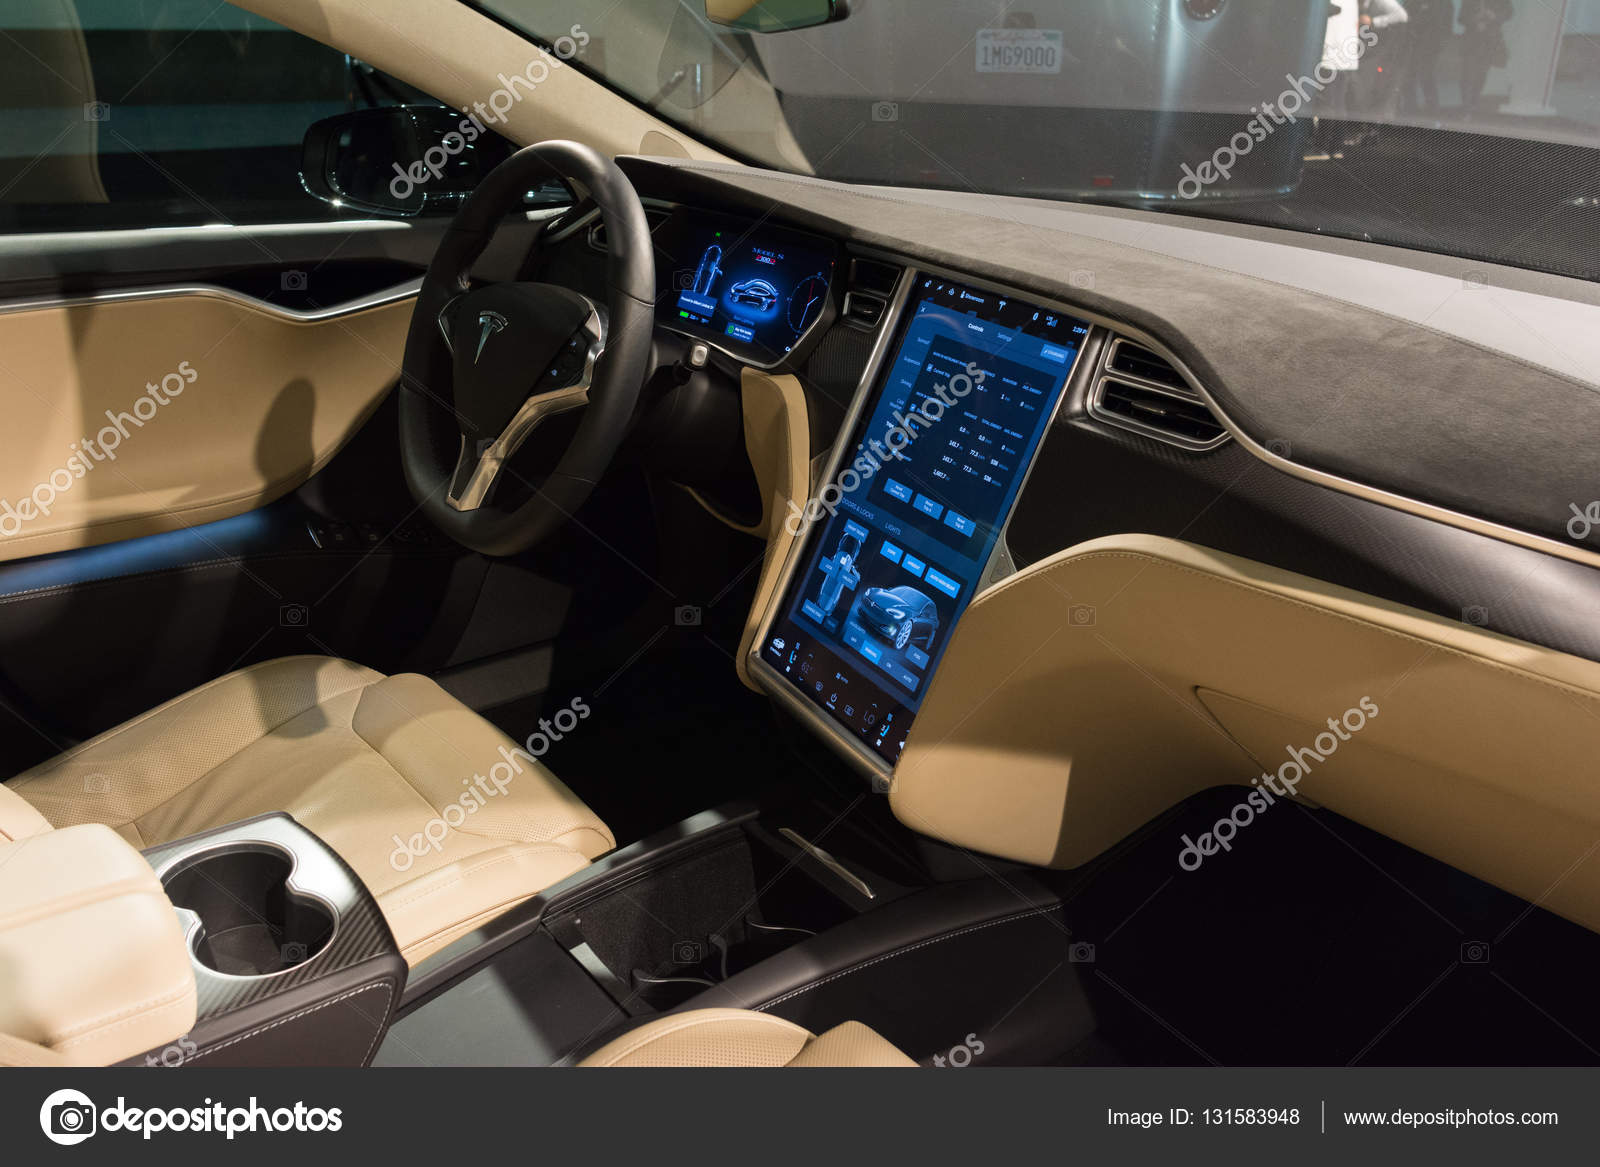 los angeles etats unis 16 novembre 2016 intrieur de tesla model s sur lcran pendant le salon de lauto de los angeles image de bettorodrigues